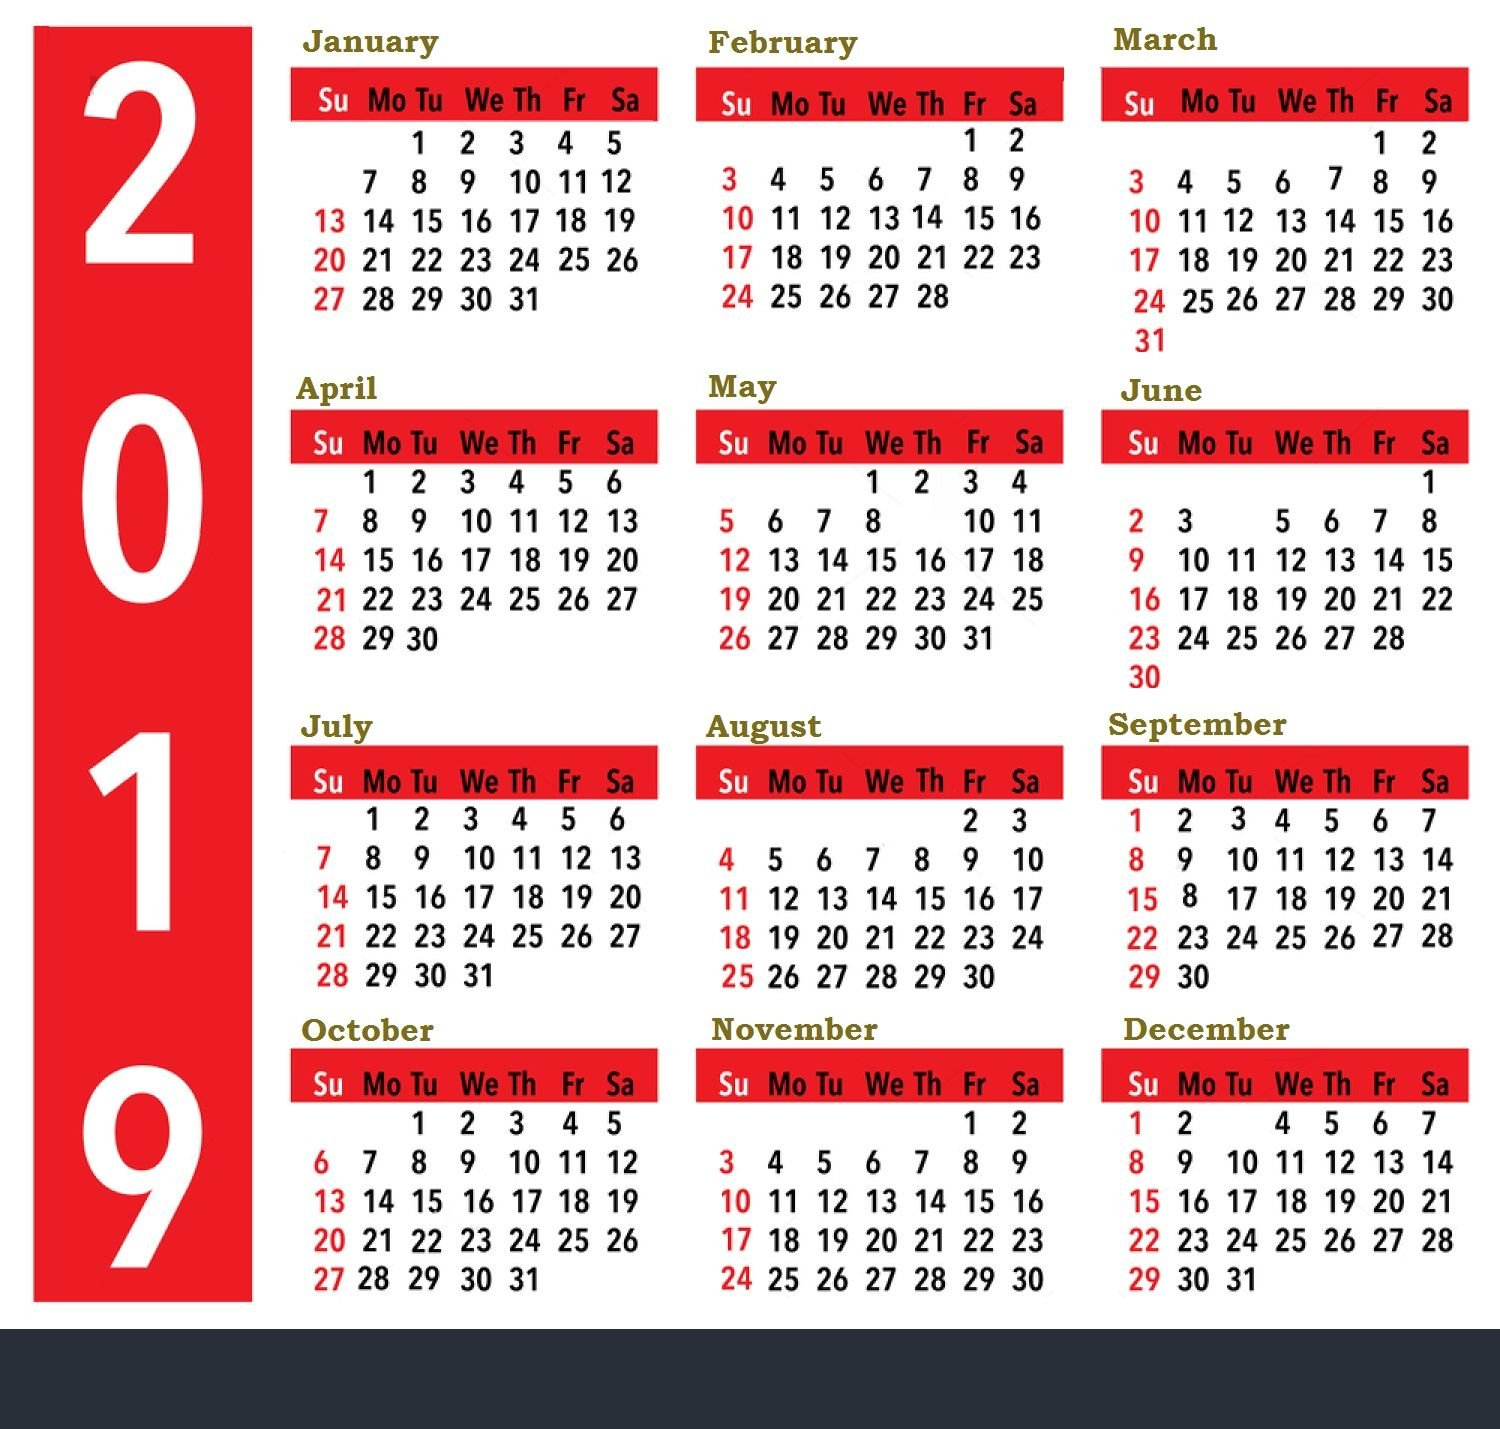 2019 Calendar For United States Holidays All Important Dates And Calendar 2019 Dates